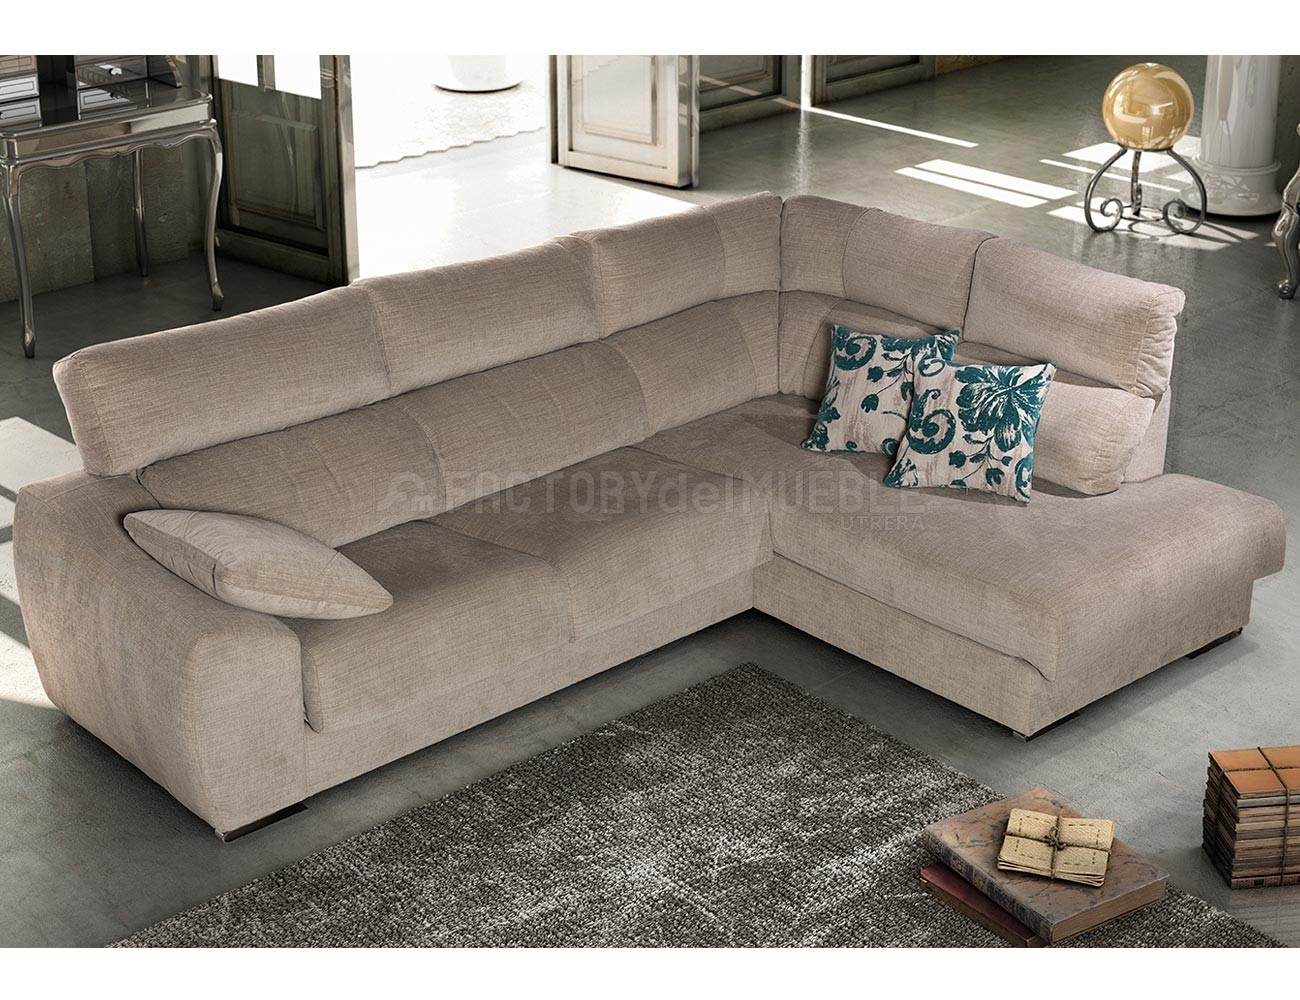 Sofa chaiselongue rincon moderno forma14